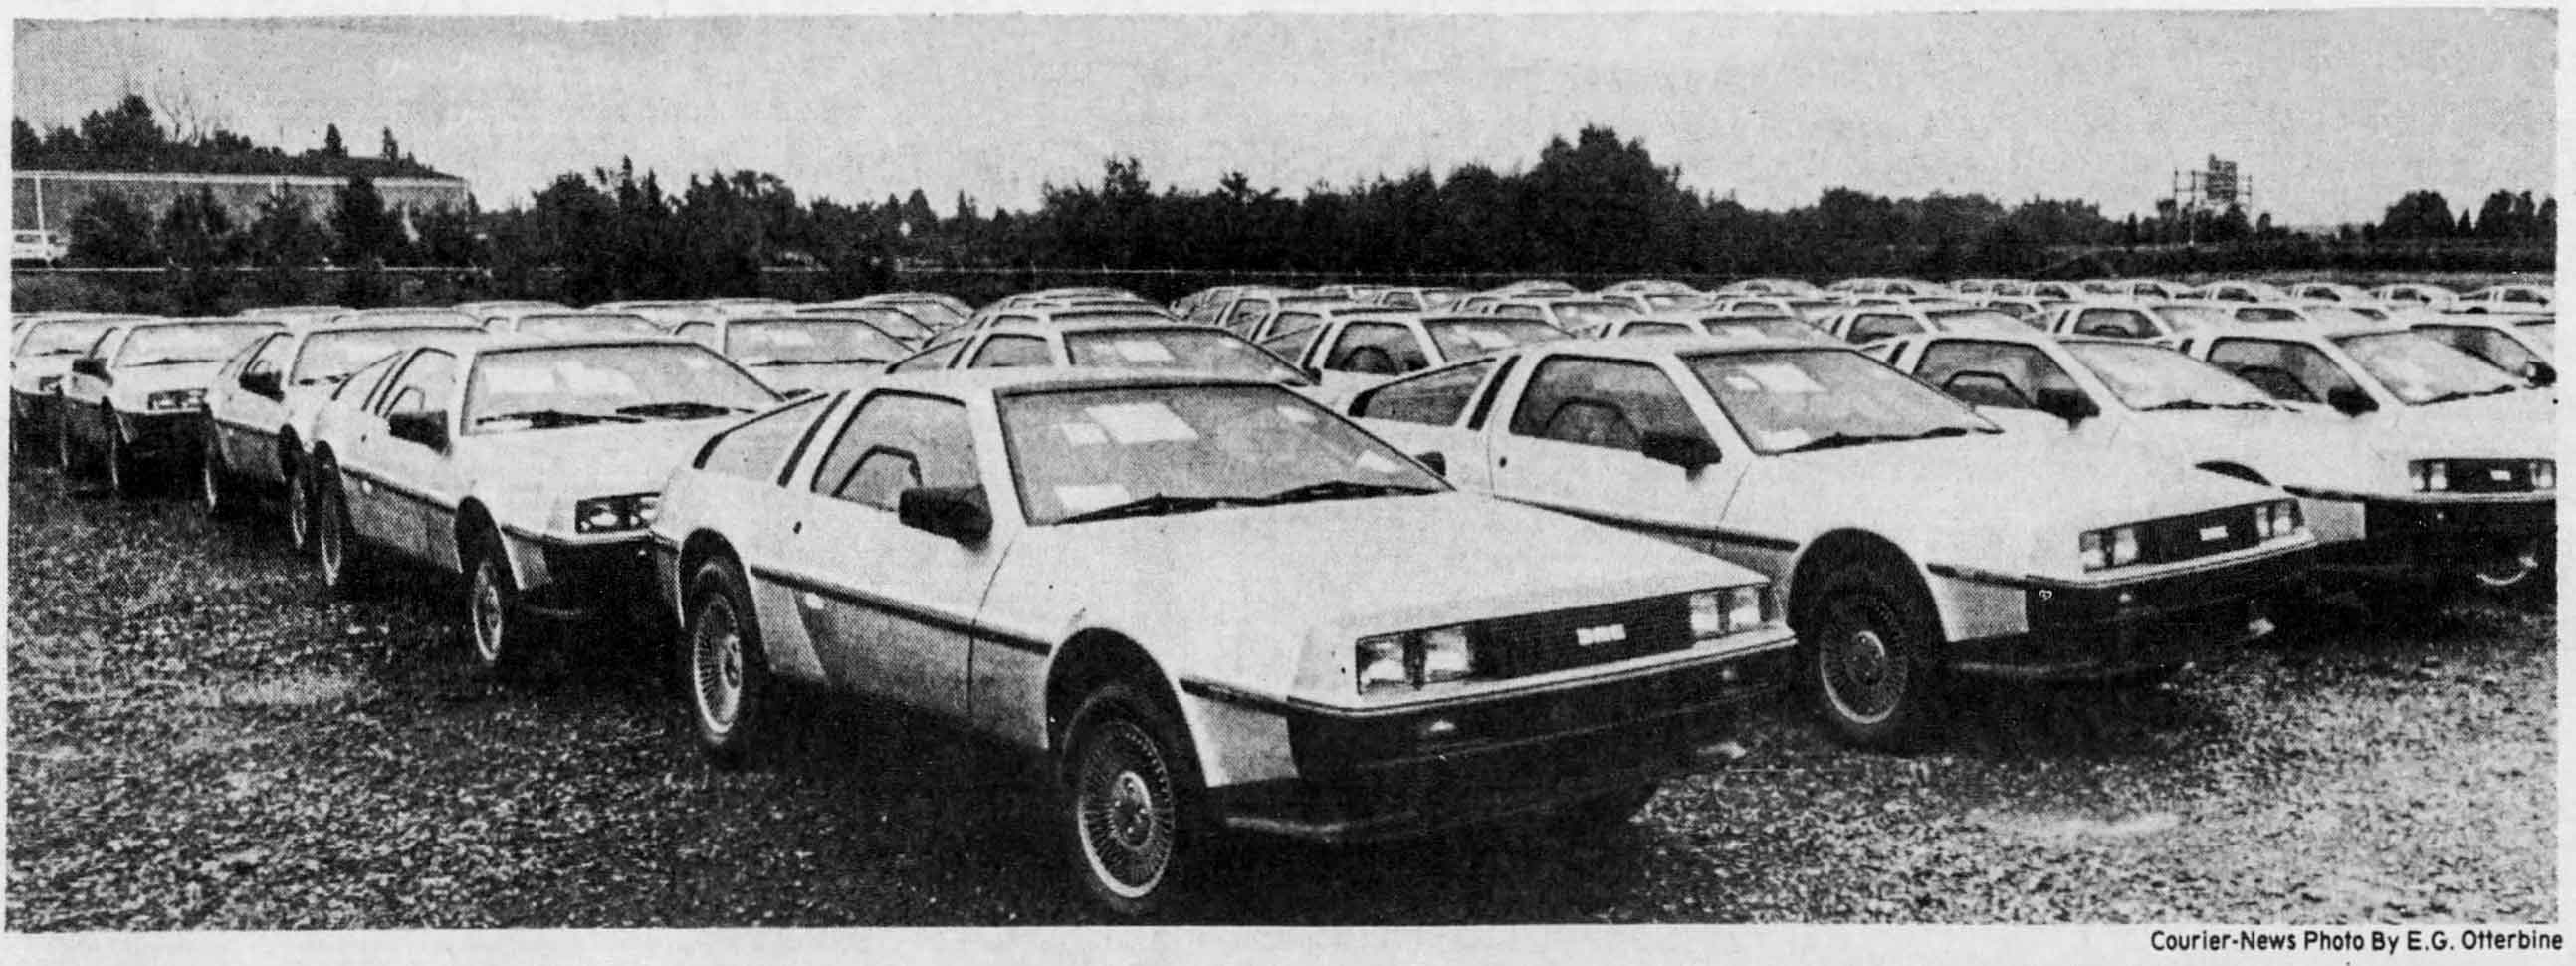 1981-08-13 - Courier-News - Central Jersey distribution point for import sports cars | DeLoreanDirectory.com